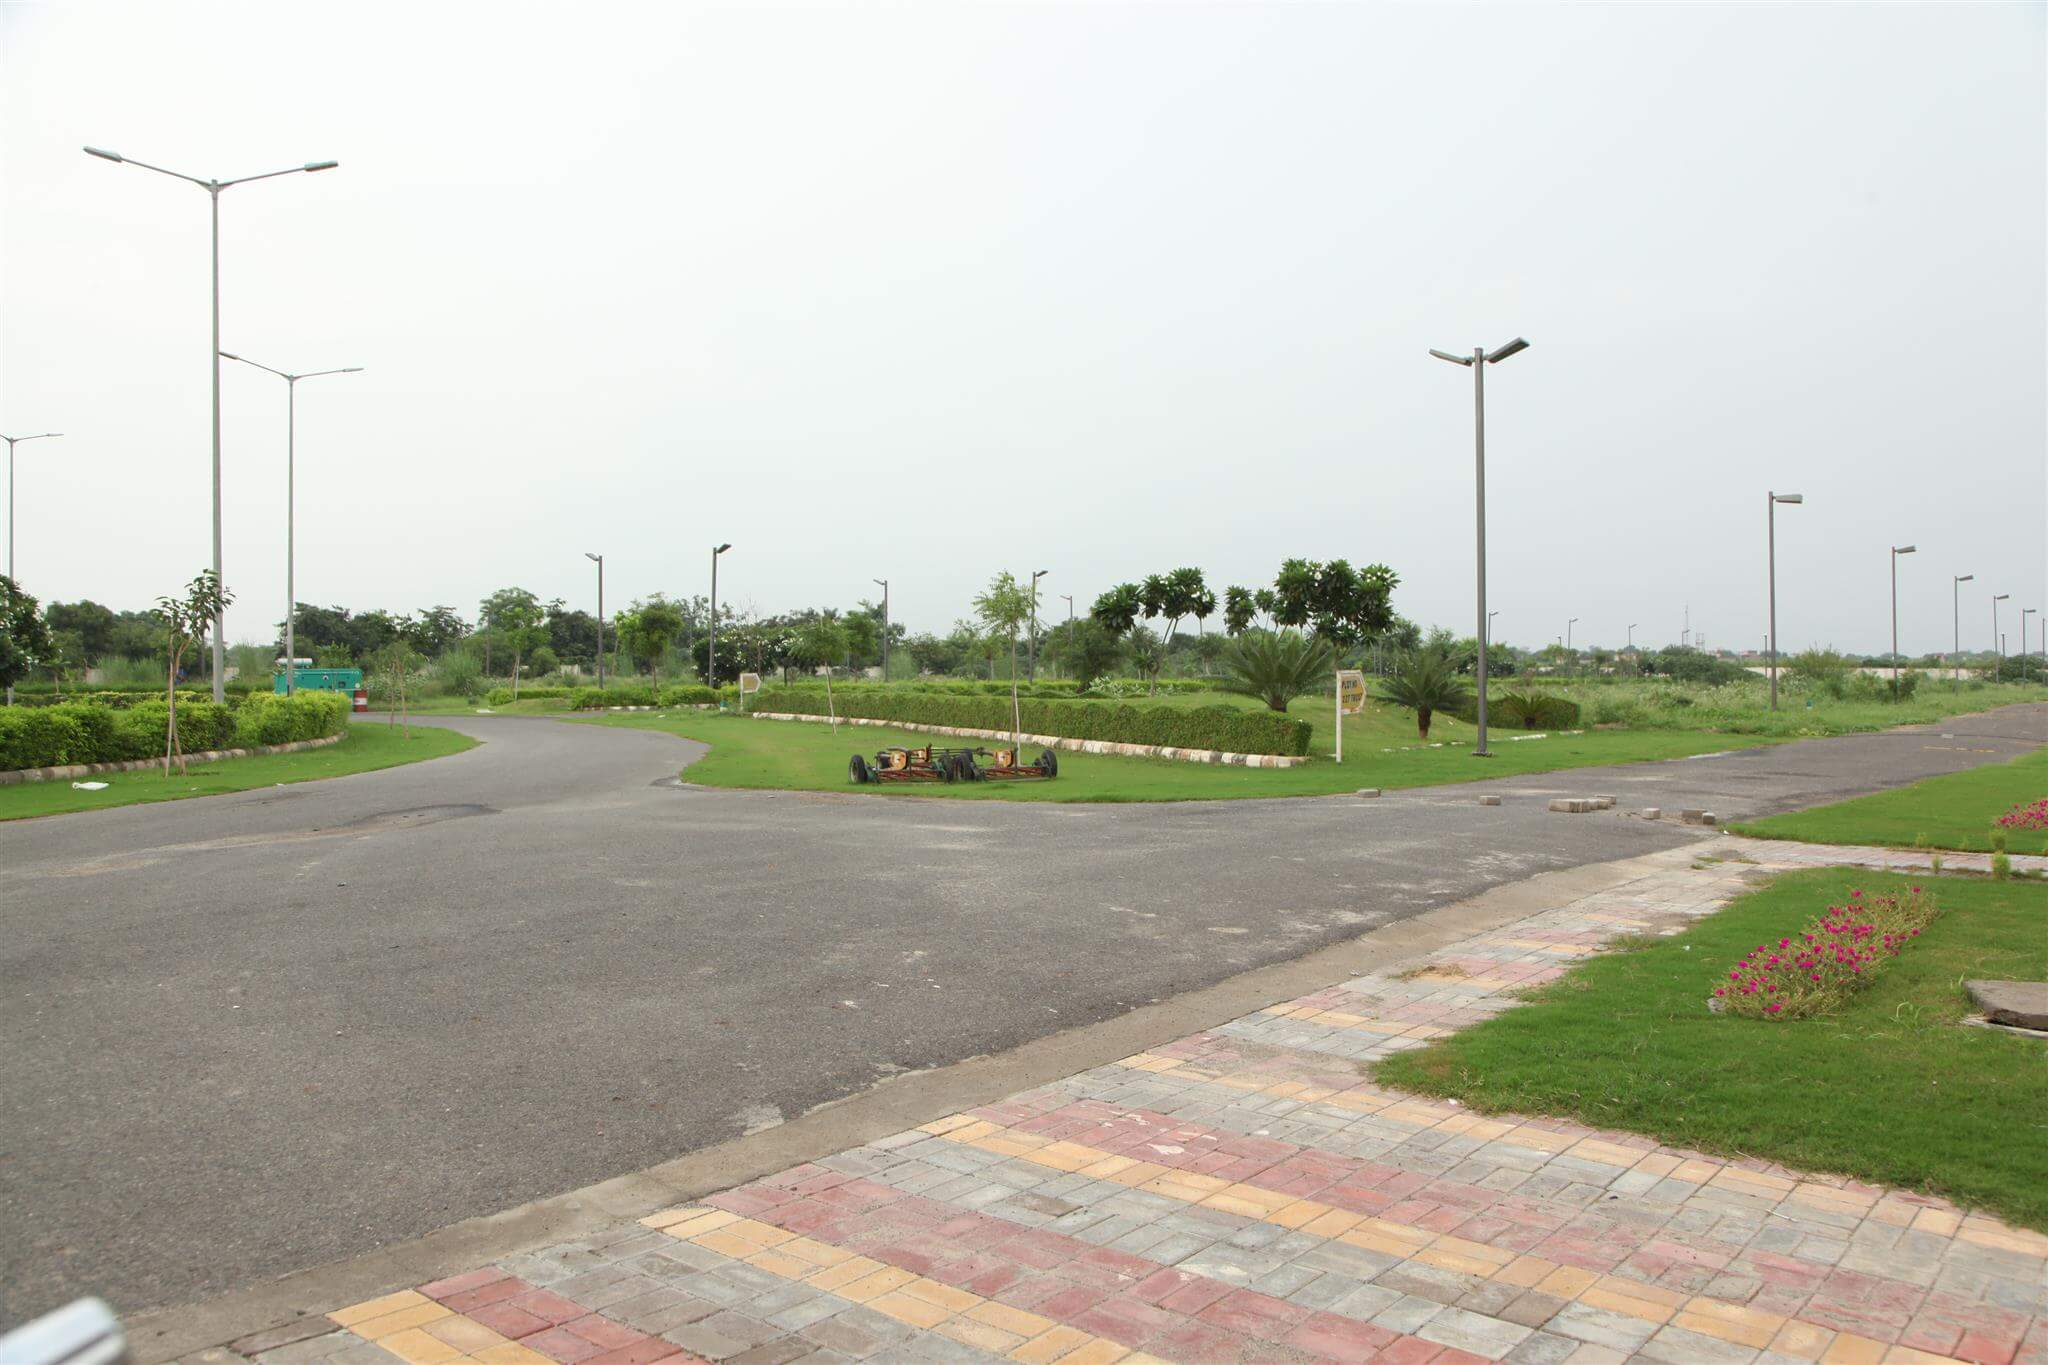 gaur yamuna city 32nd park view greens image4